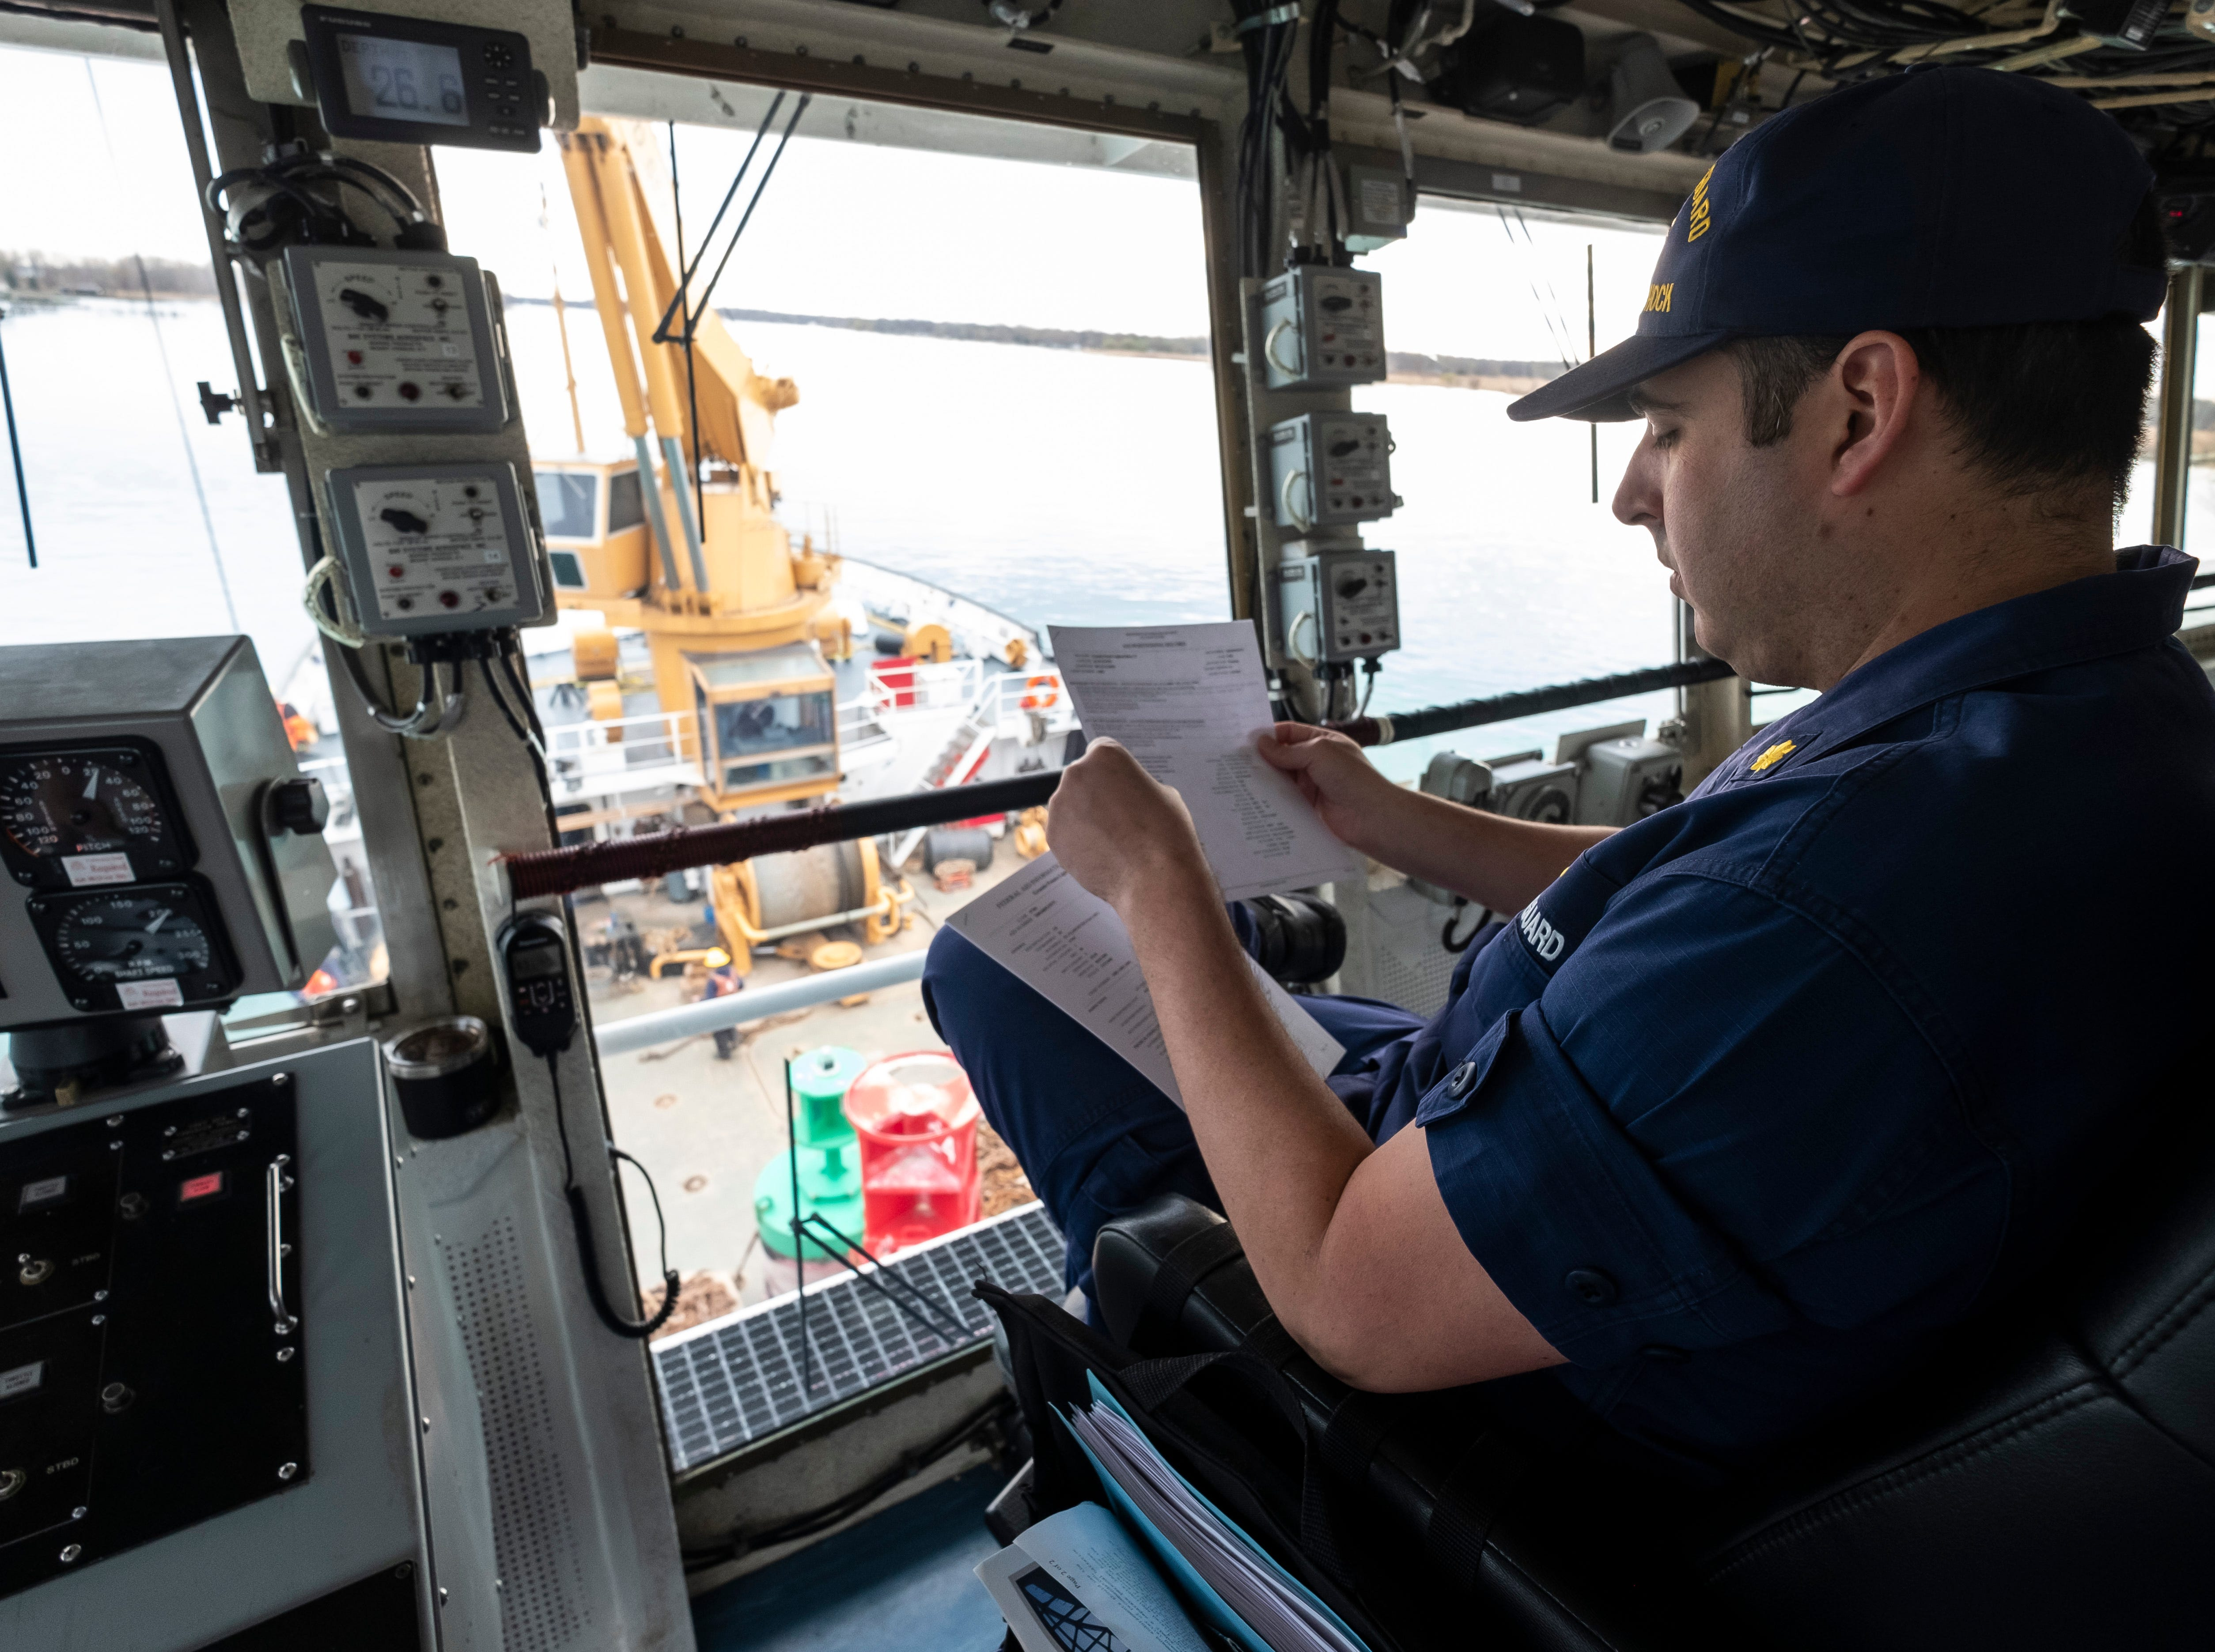 """U.S. Coast Guard Lt. Cmdr. Nick Monacelli, the Hollyhock's captain, looks over the Aid Positioning Record on the ship's bridge Thursday morning, April 25, 2019. The log shows a history of where each buoy was found and placed and is signed off and certified by the captain. """"It's our due diligence,"""" he said of the report."""